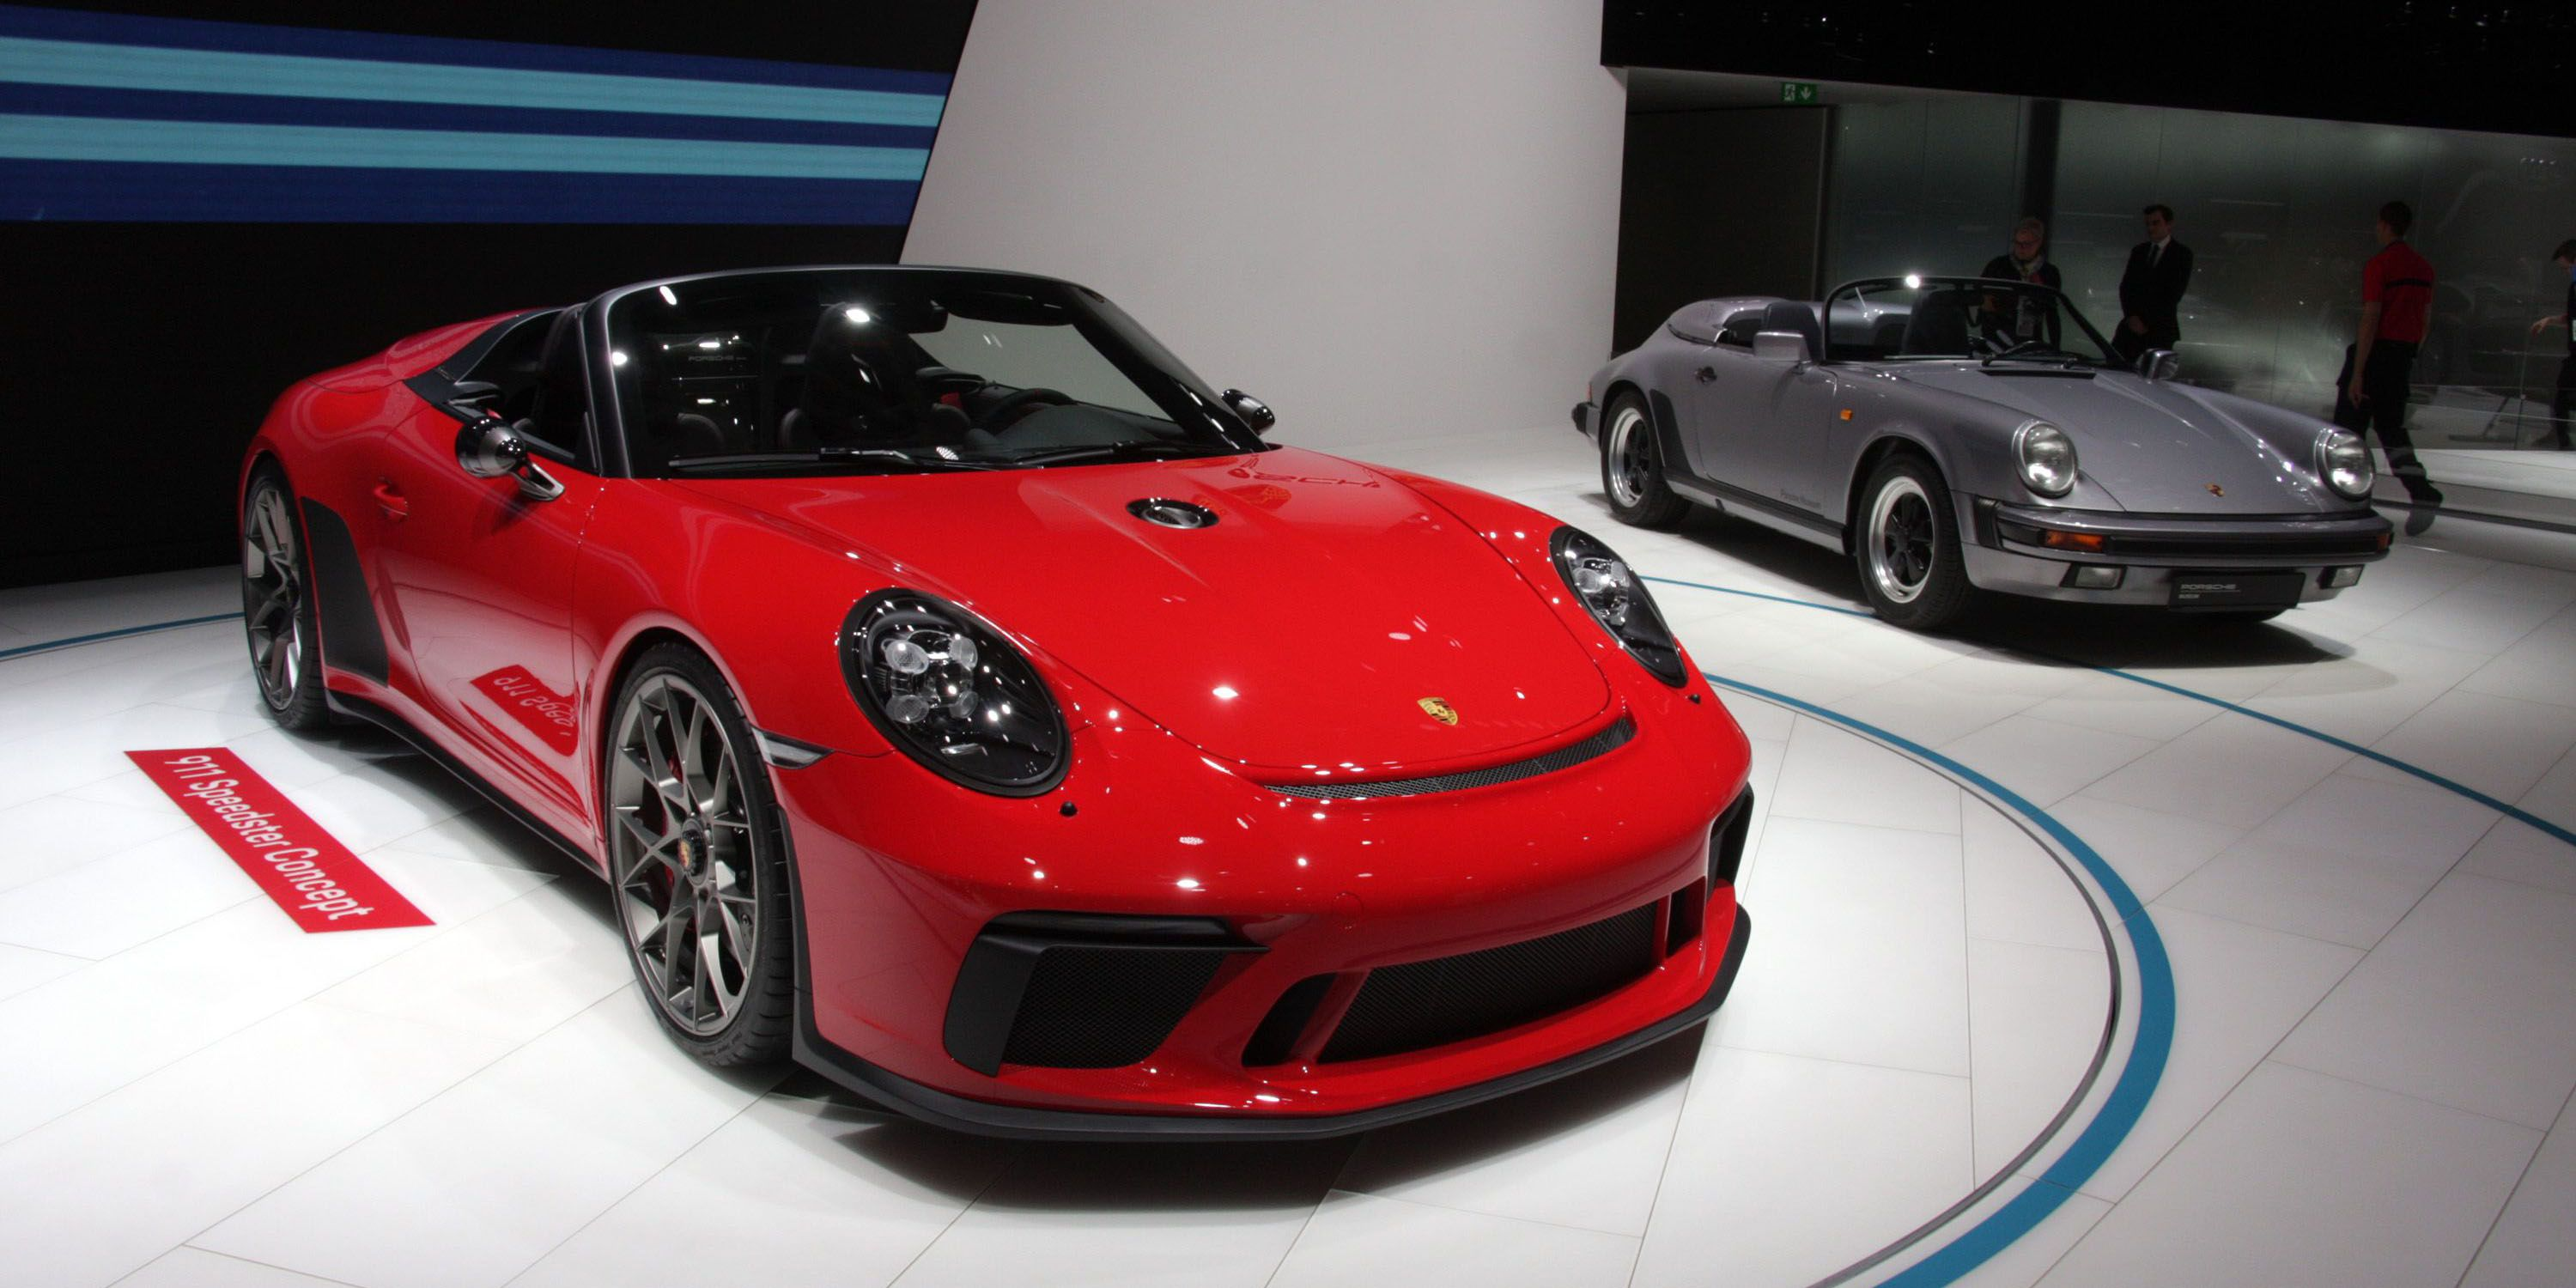 The New Porsche 911 Speedster Is a Purist Mashup of Great Parts